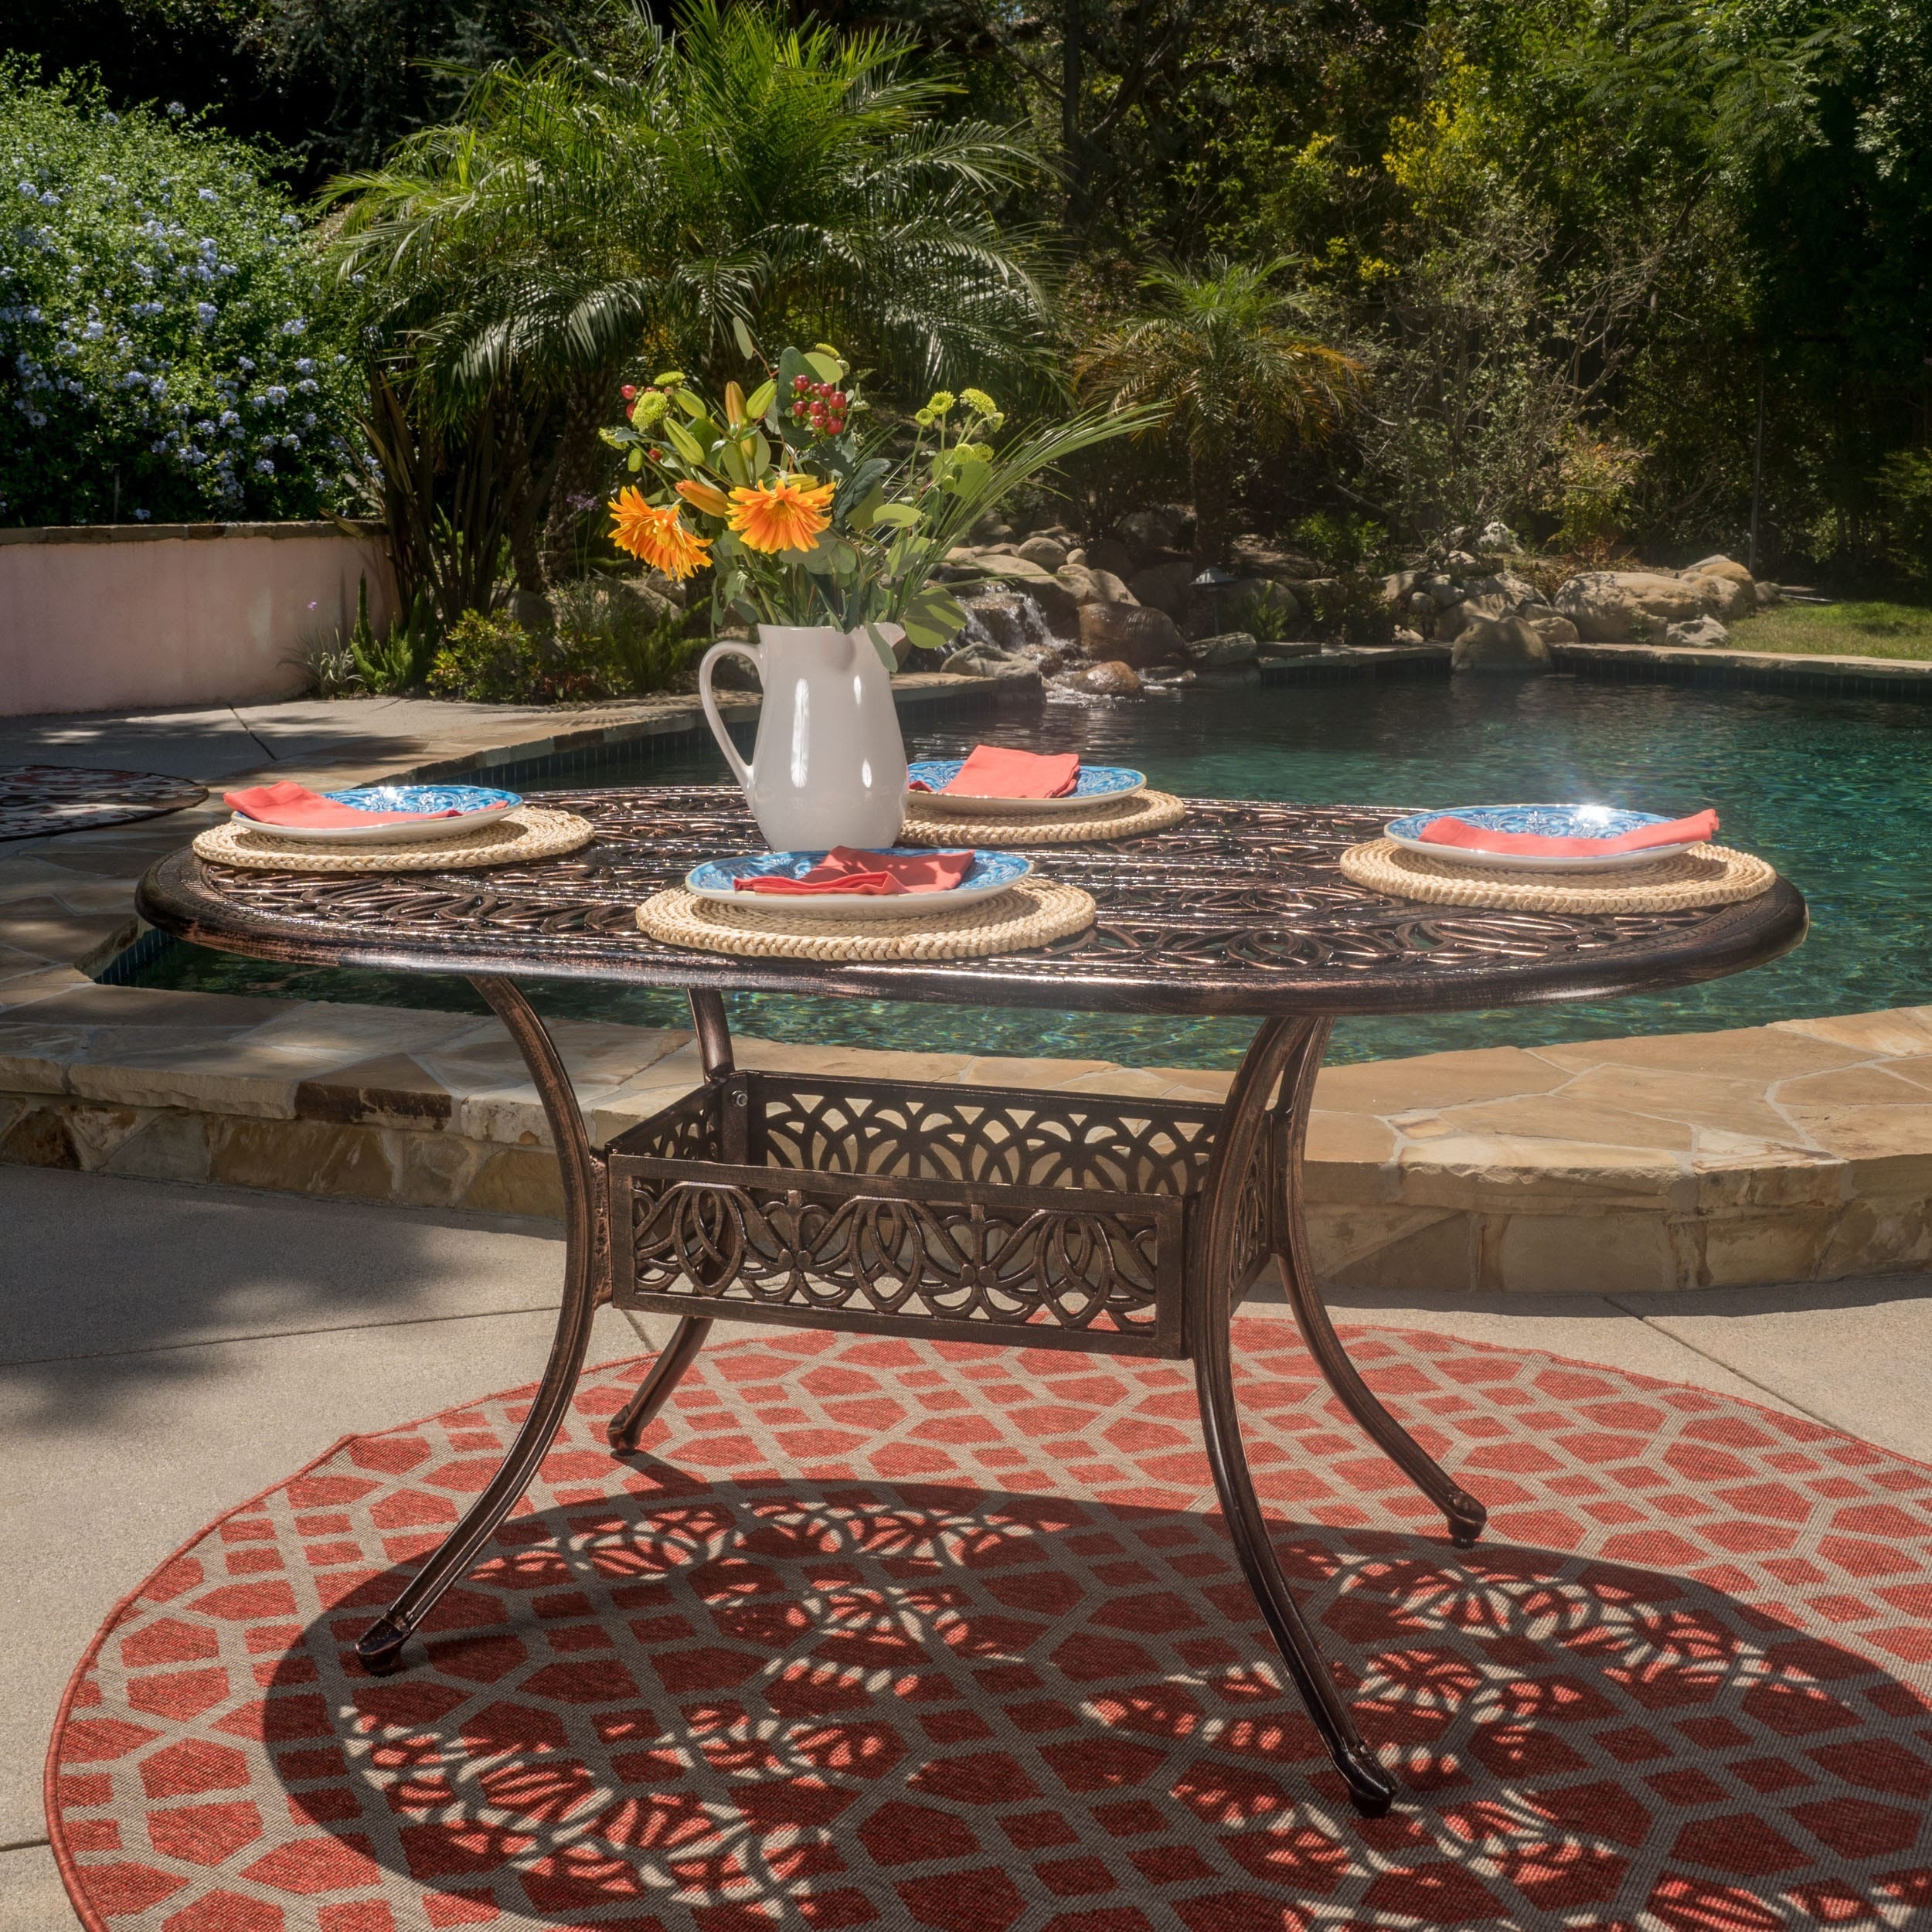 home corsica table outdoor free shipping dining wicker today overstock knight garden product by christopher patio oval